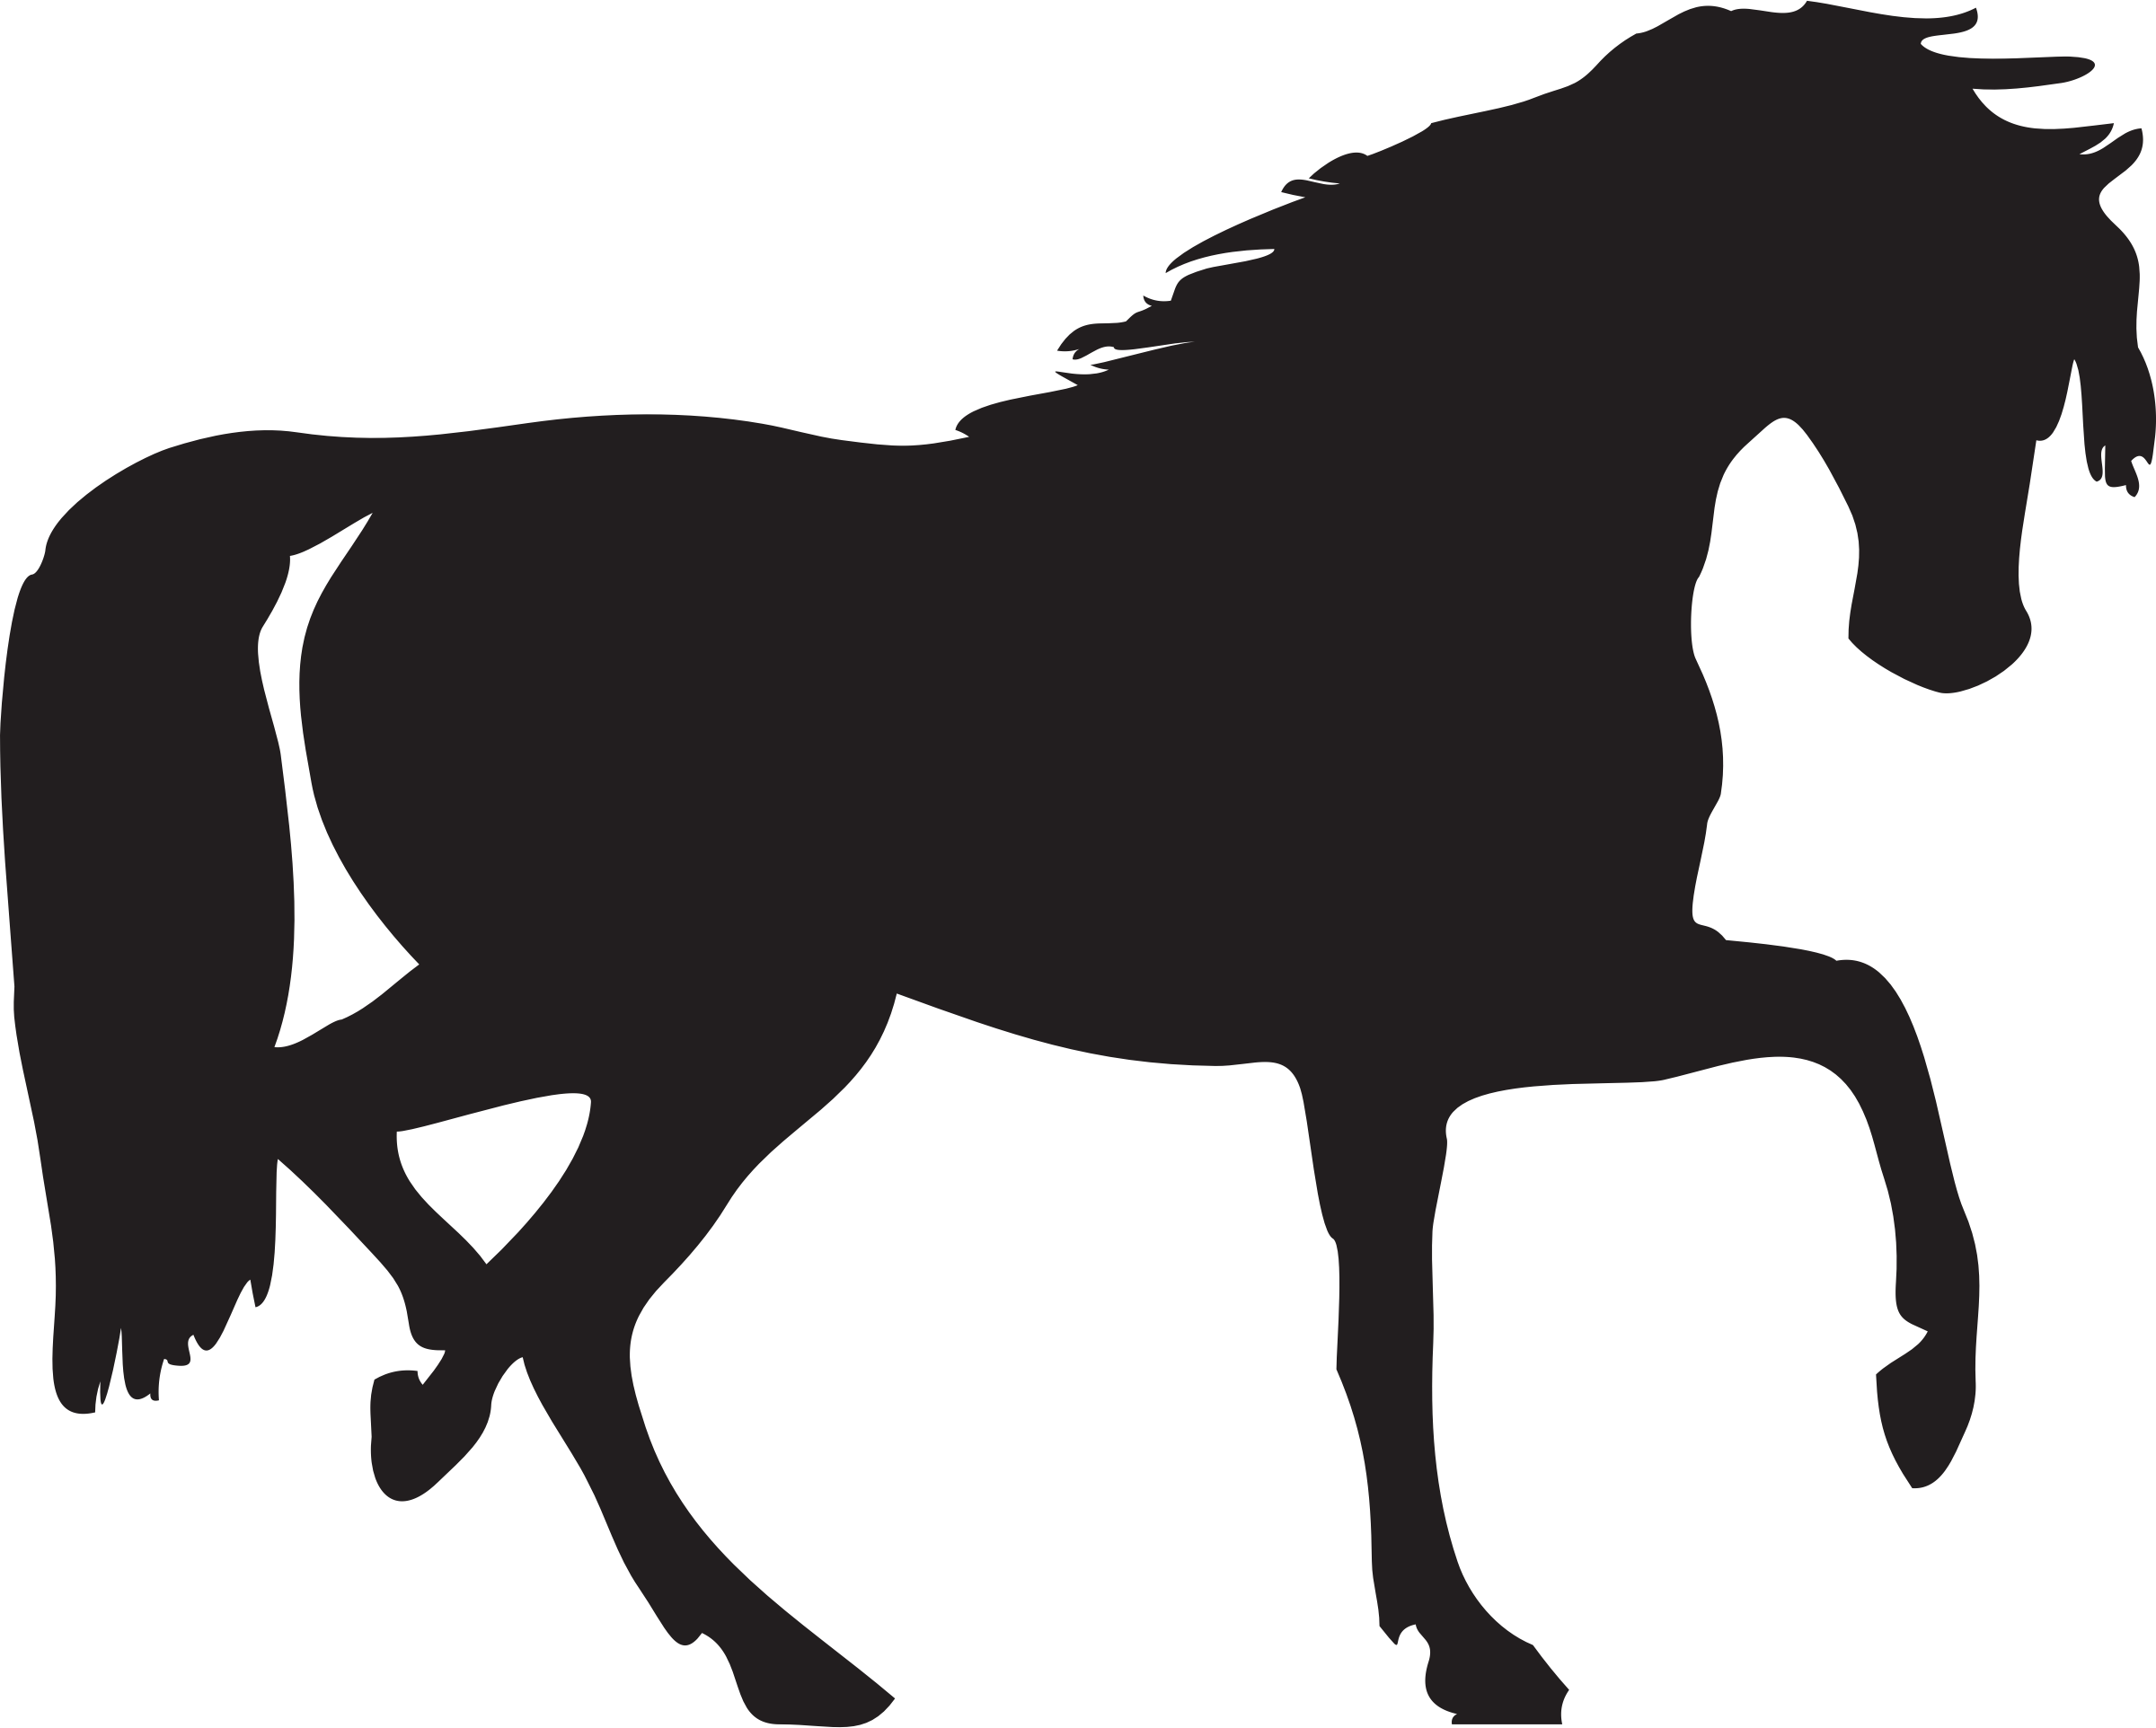 Horse silhouette vector clipart image - Free stock photo ...